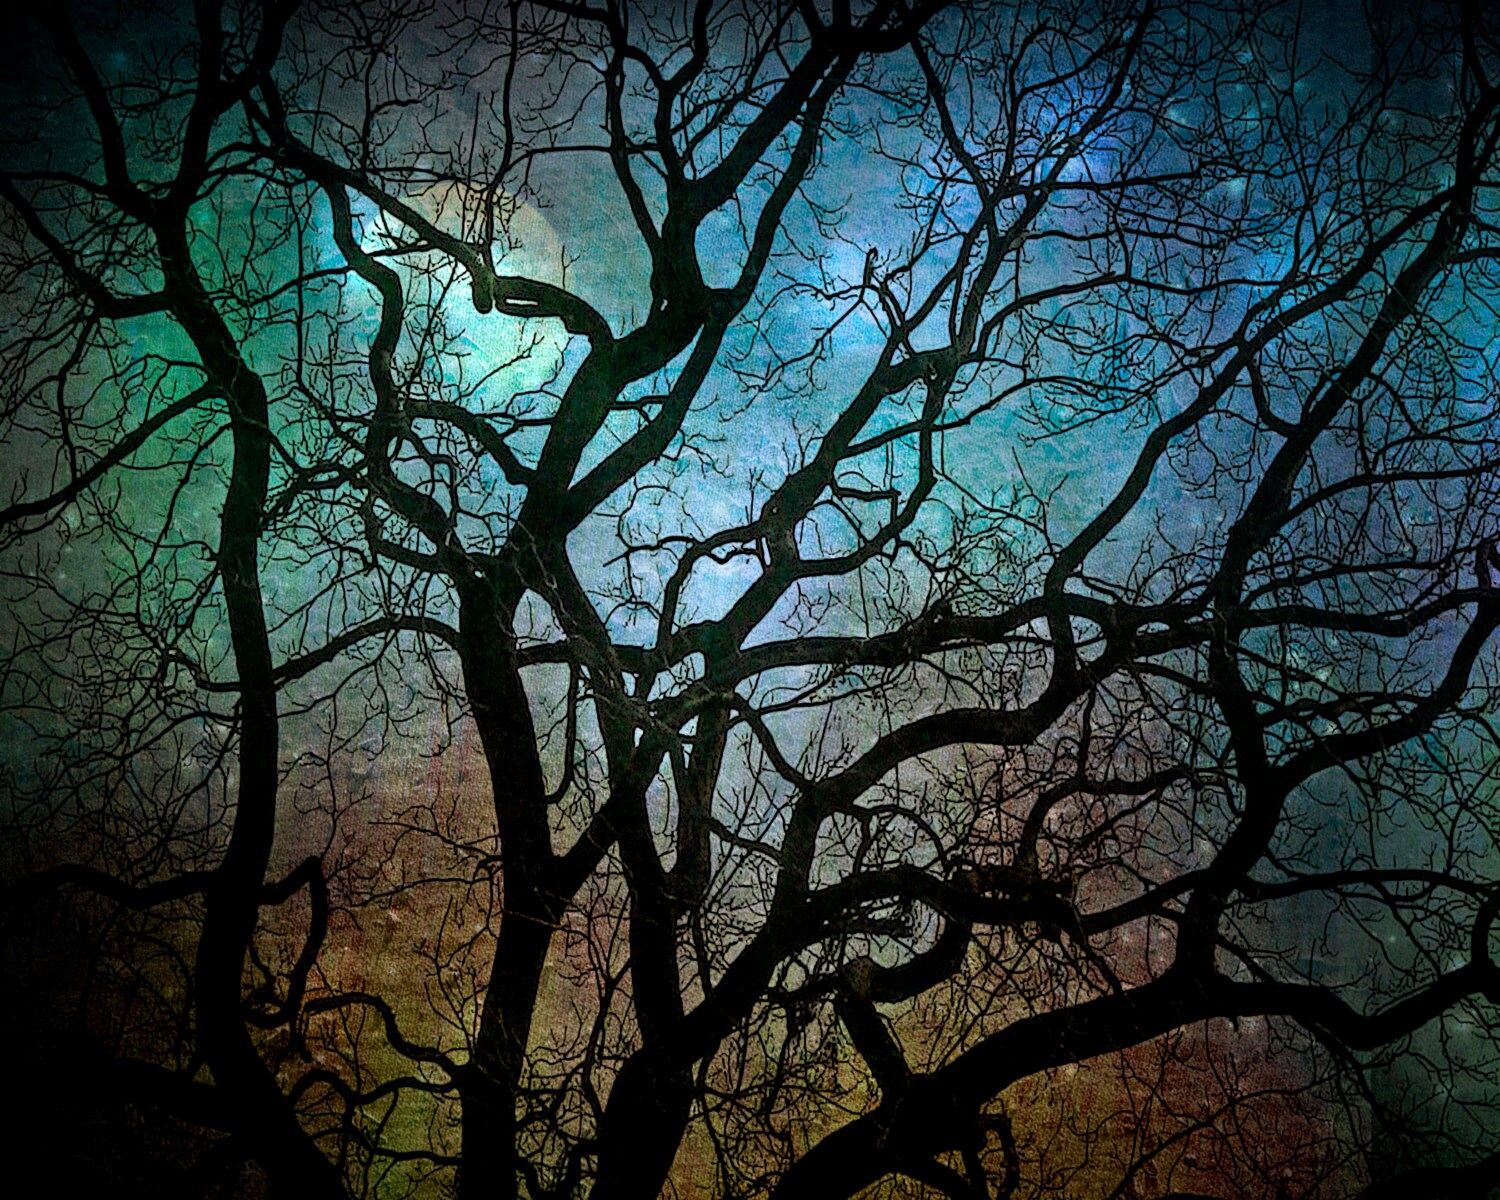 Nature Photography, teal, black tree branches, winter home decor, night sky, Blue Moon Over Philadelphia fine art photography print 8x10 - moonlightphotography